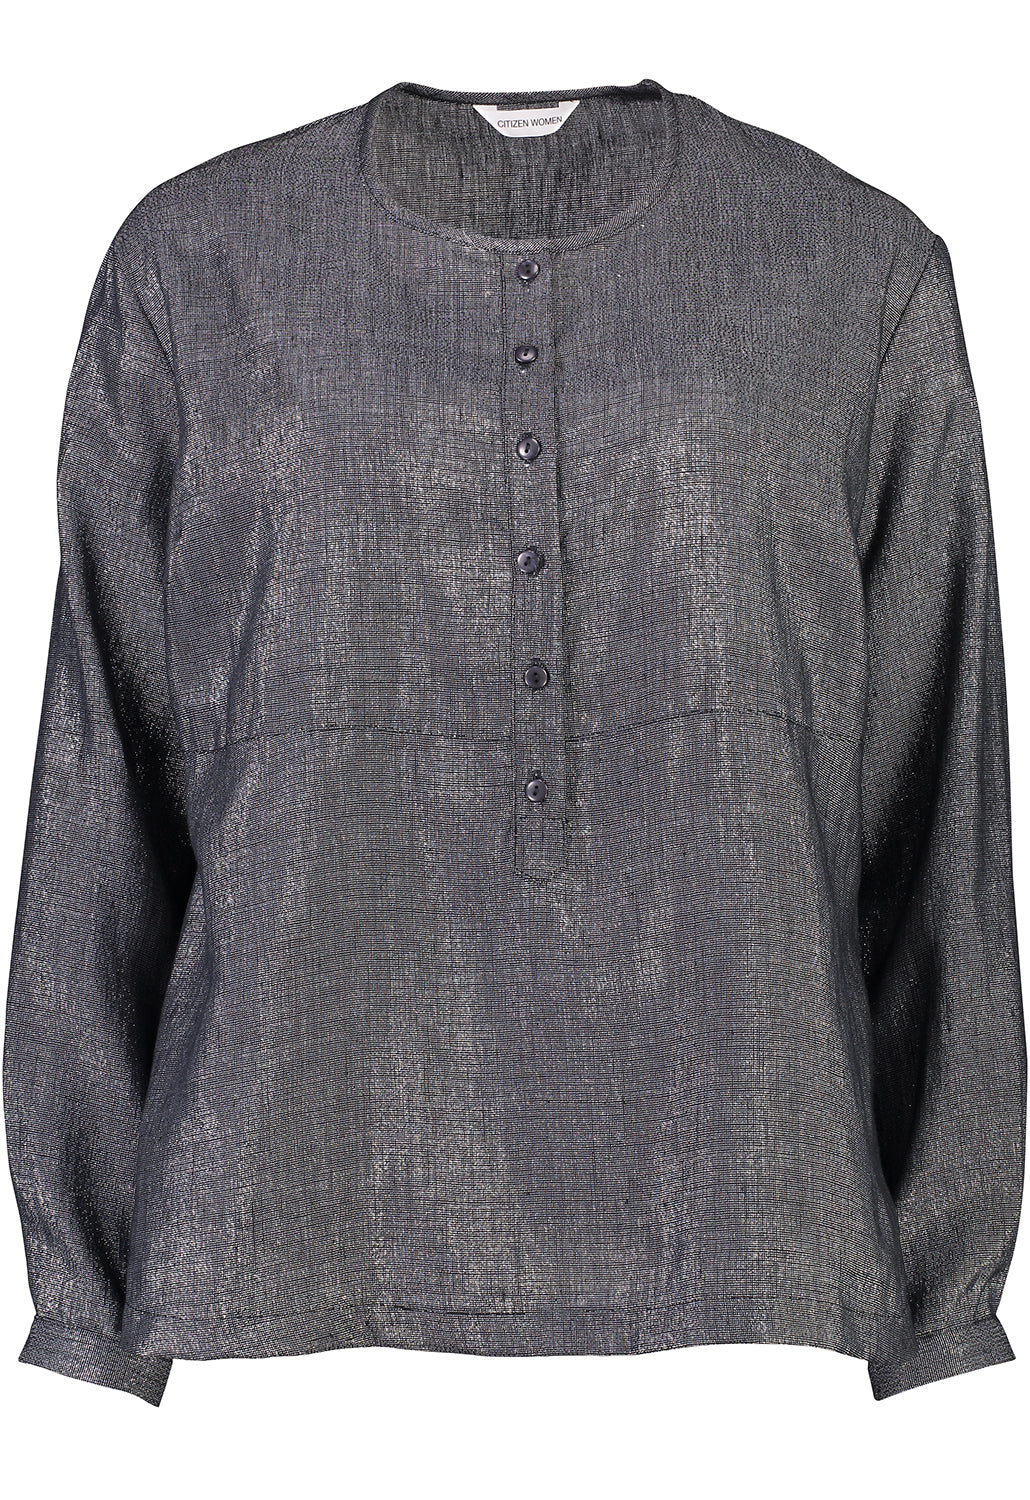 Capital Placket Shirt | Metal | Linen